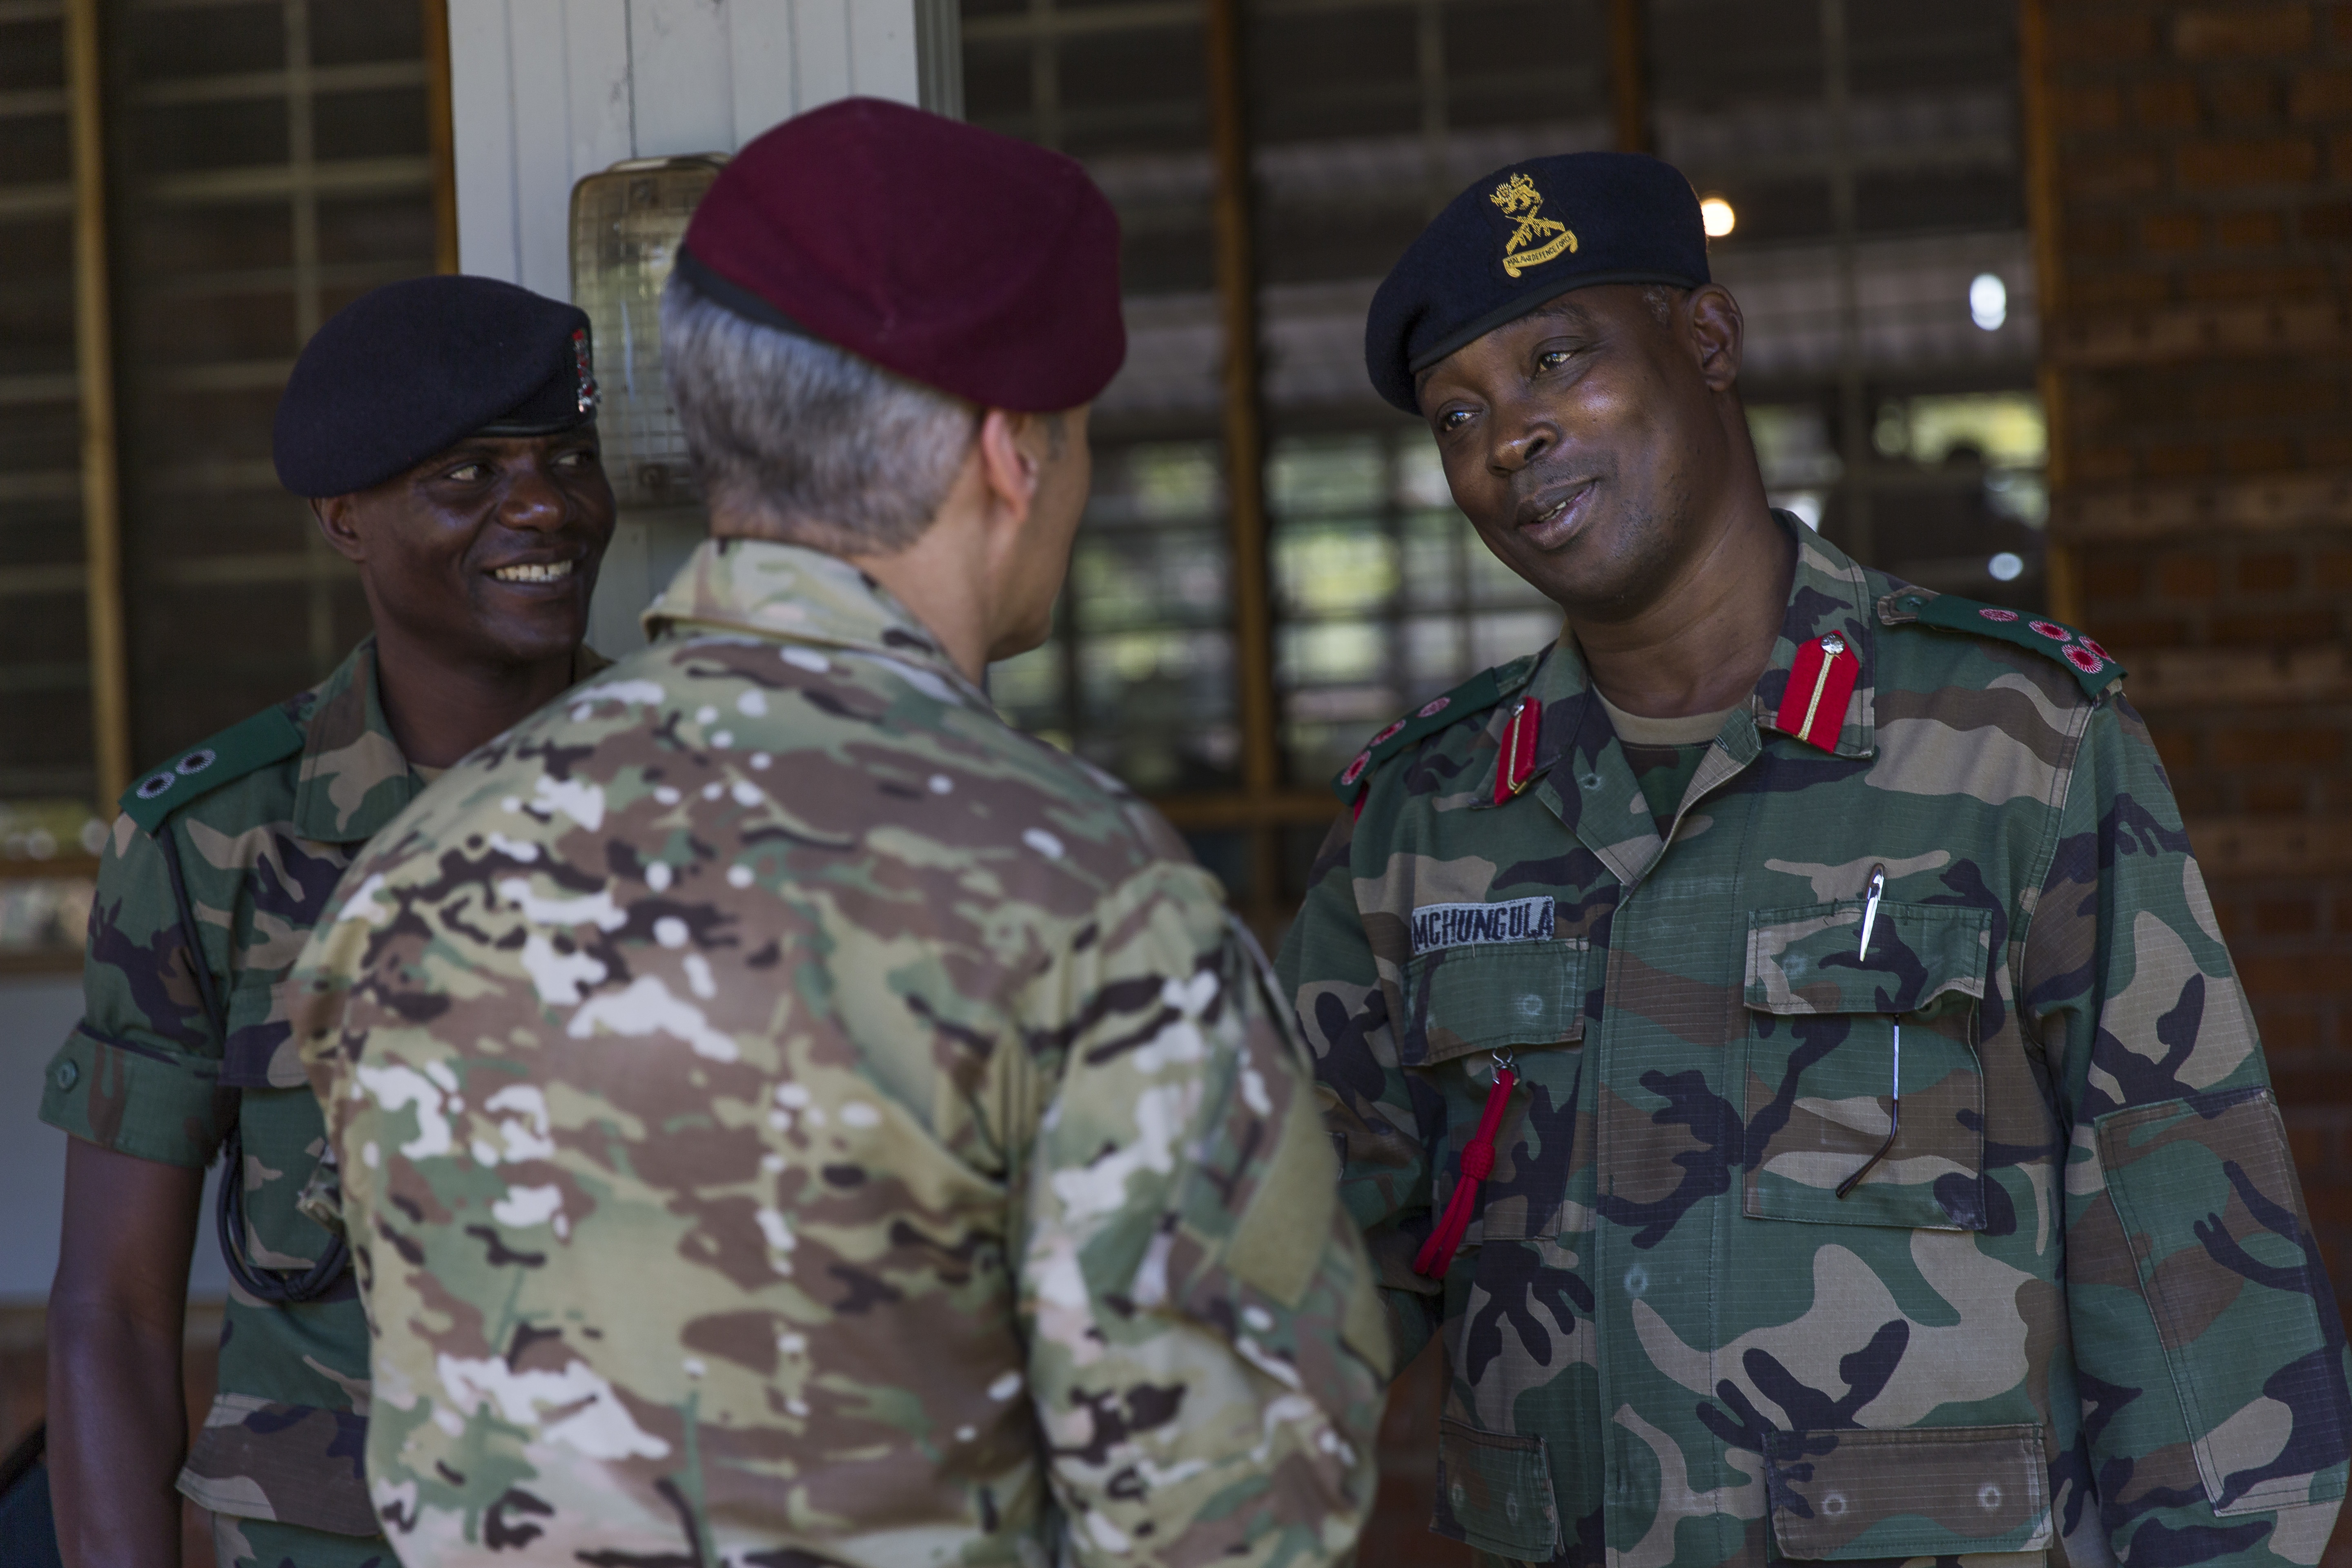 U.S. Africa Command Senior Enlisted Leader Command Chief Master Sgt. Ramon Colon-Lopez says goodbye to the Malawi Armed Forces College Commandant Brigadier General Swithun Mchungula after a three-day visit to Malawi, Africa, June 1, 2018. Colon-Lopez travelled to Malawi to meet with the Malawi Defence Force, engaging with both senior officer and enlisted leadership as part of a three-day tour. The visit included a follow-up on issues addressed by the MDF during the Africa Senior Enlisted Leader Conference in November 2017, as well as an assessment of the MDF's capability to train and sustain Peace Keeping Operations Forces.